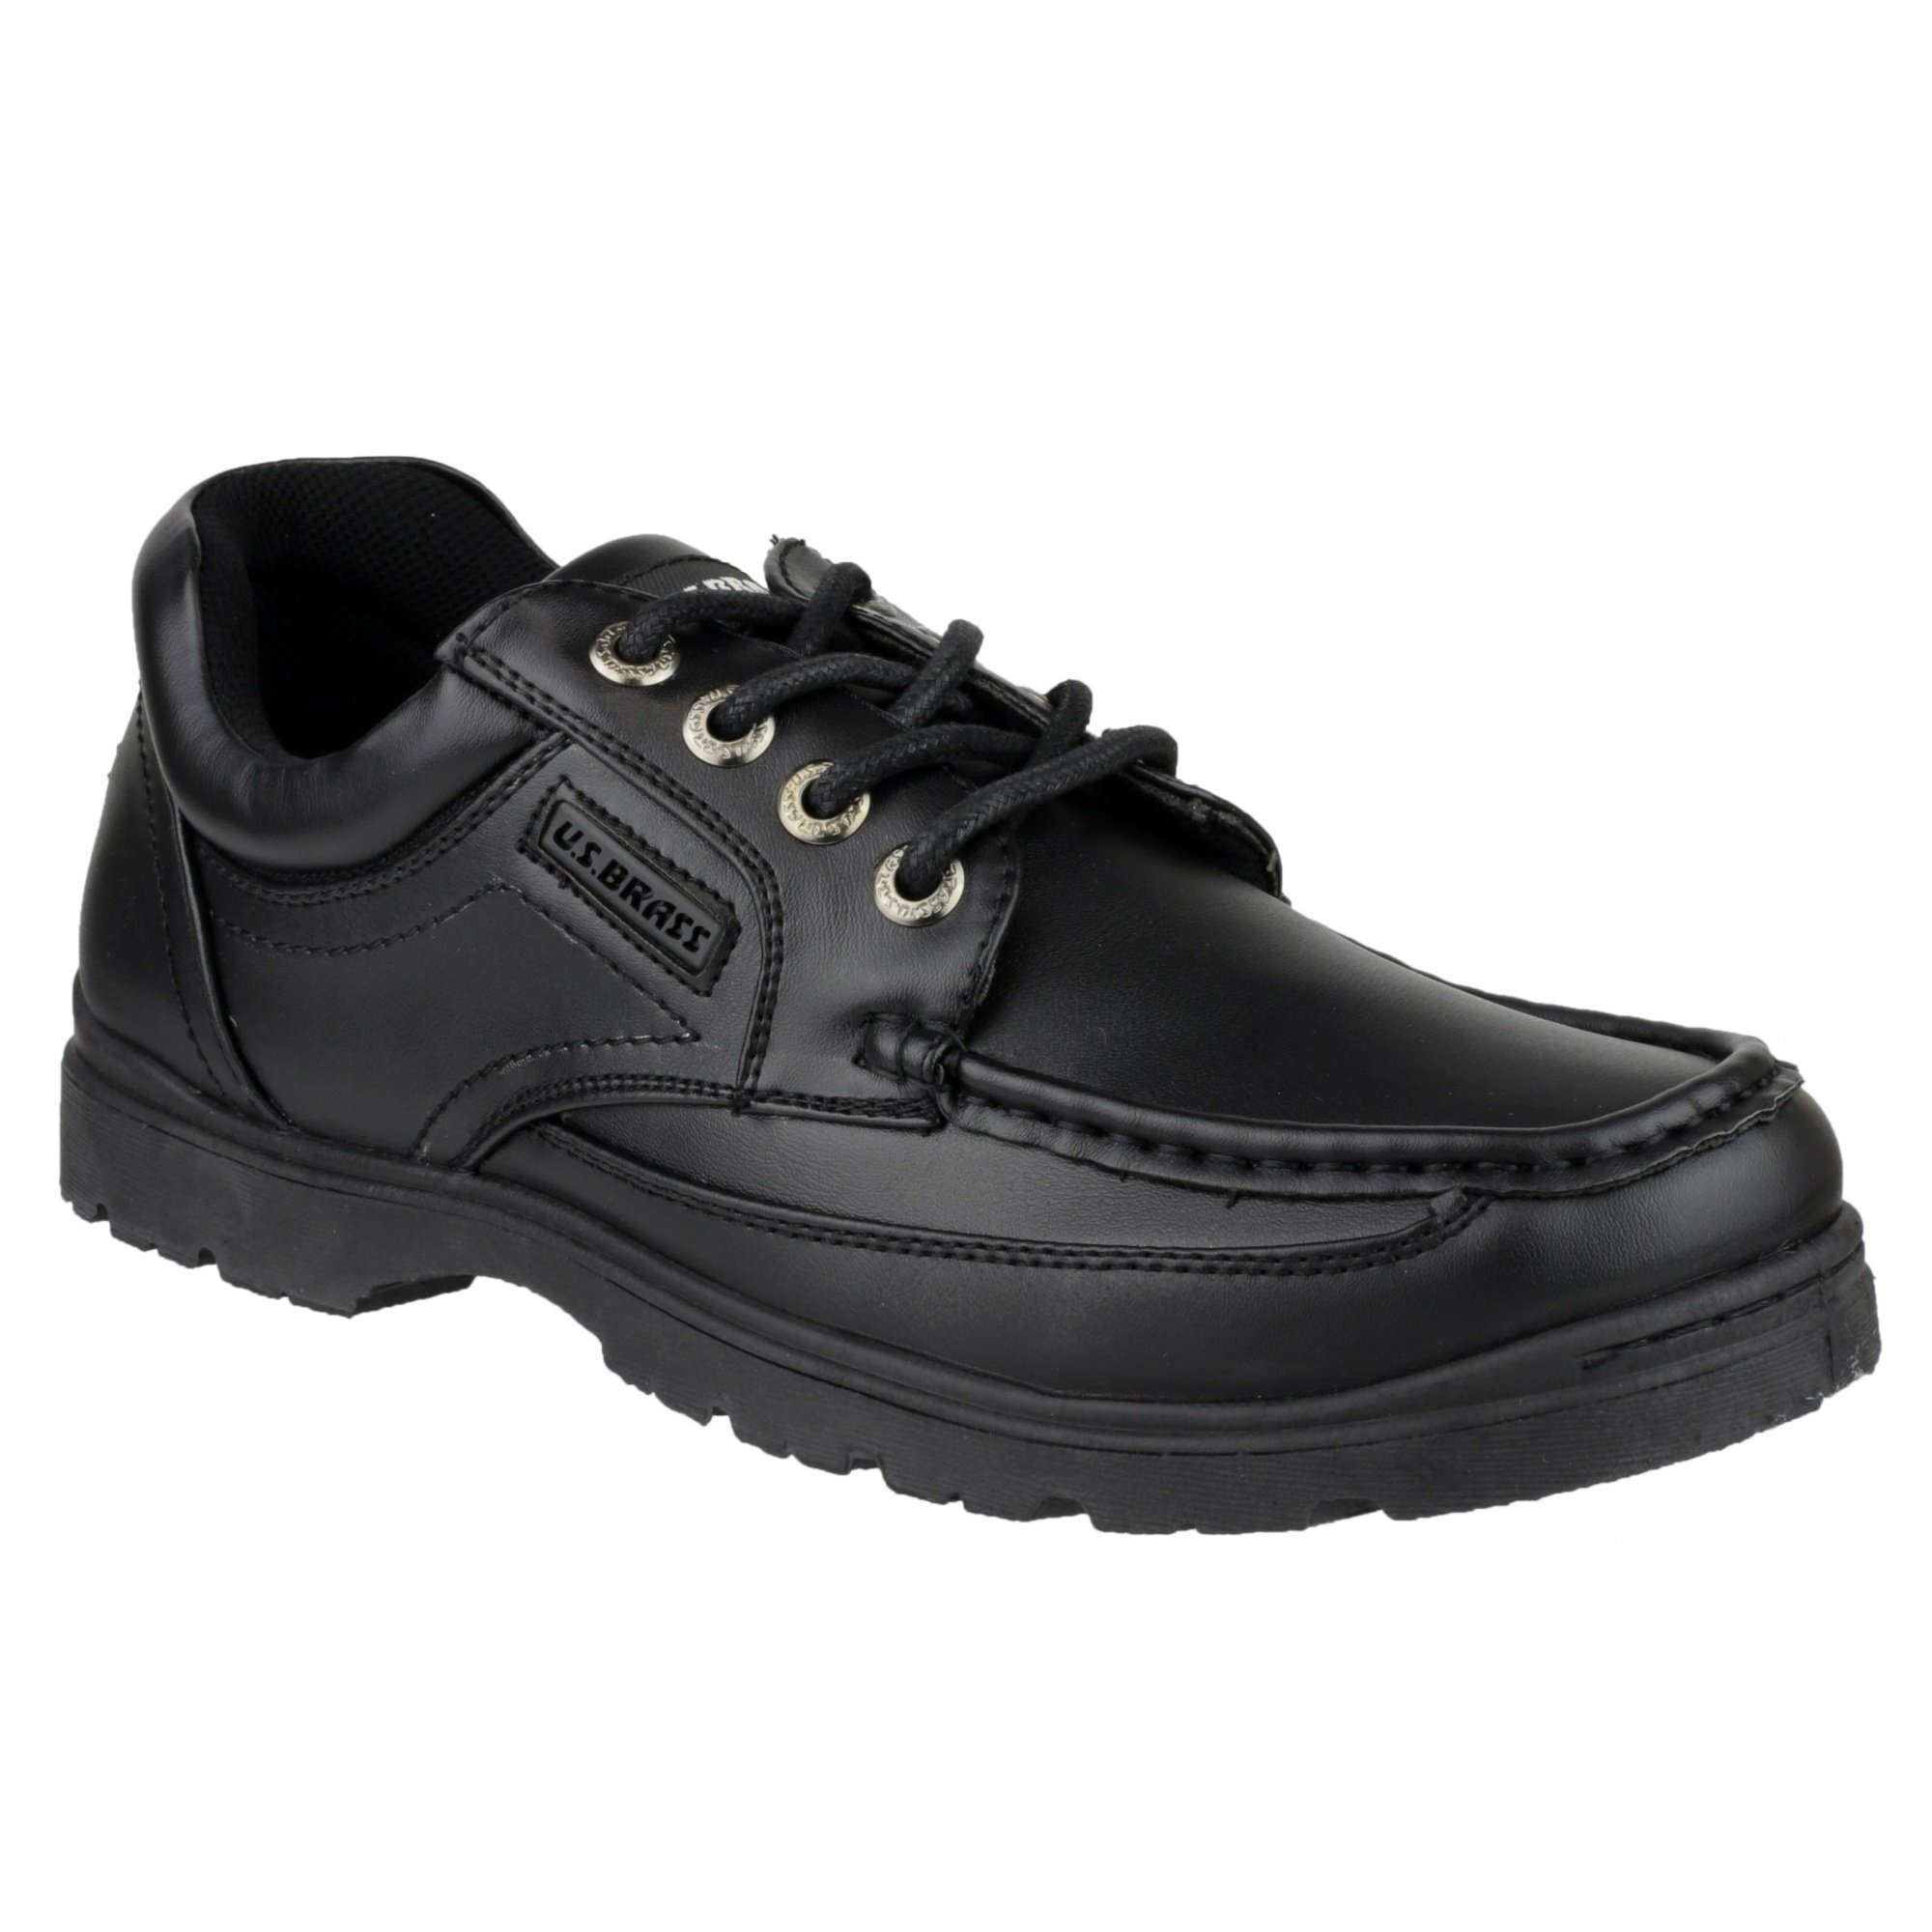 US Brass Stubby 3 Lace Up Shoe/Mens Shoes (11 US) (Black) by US Brass